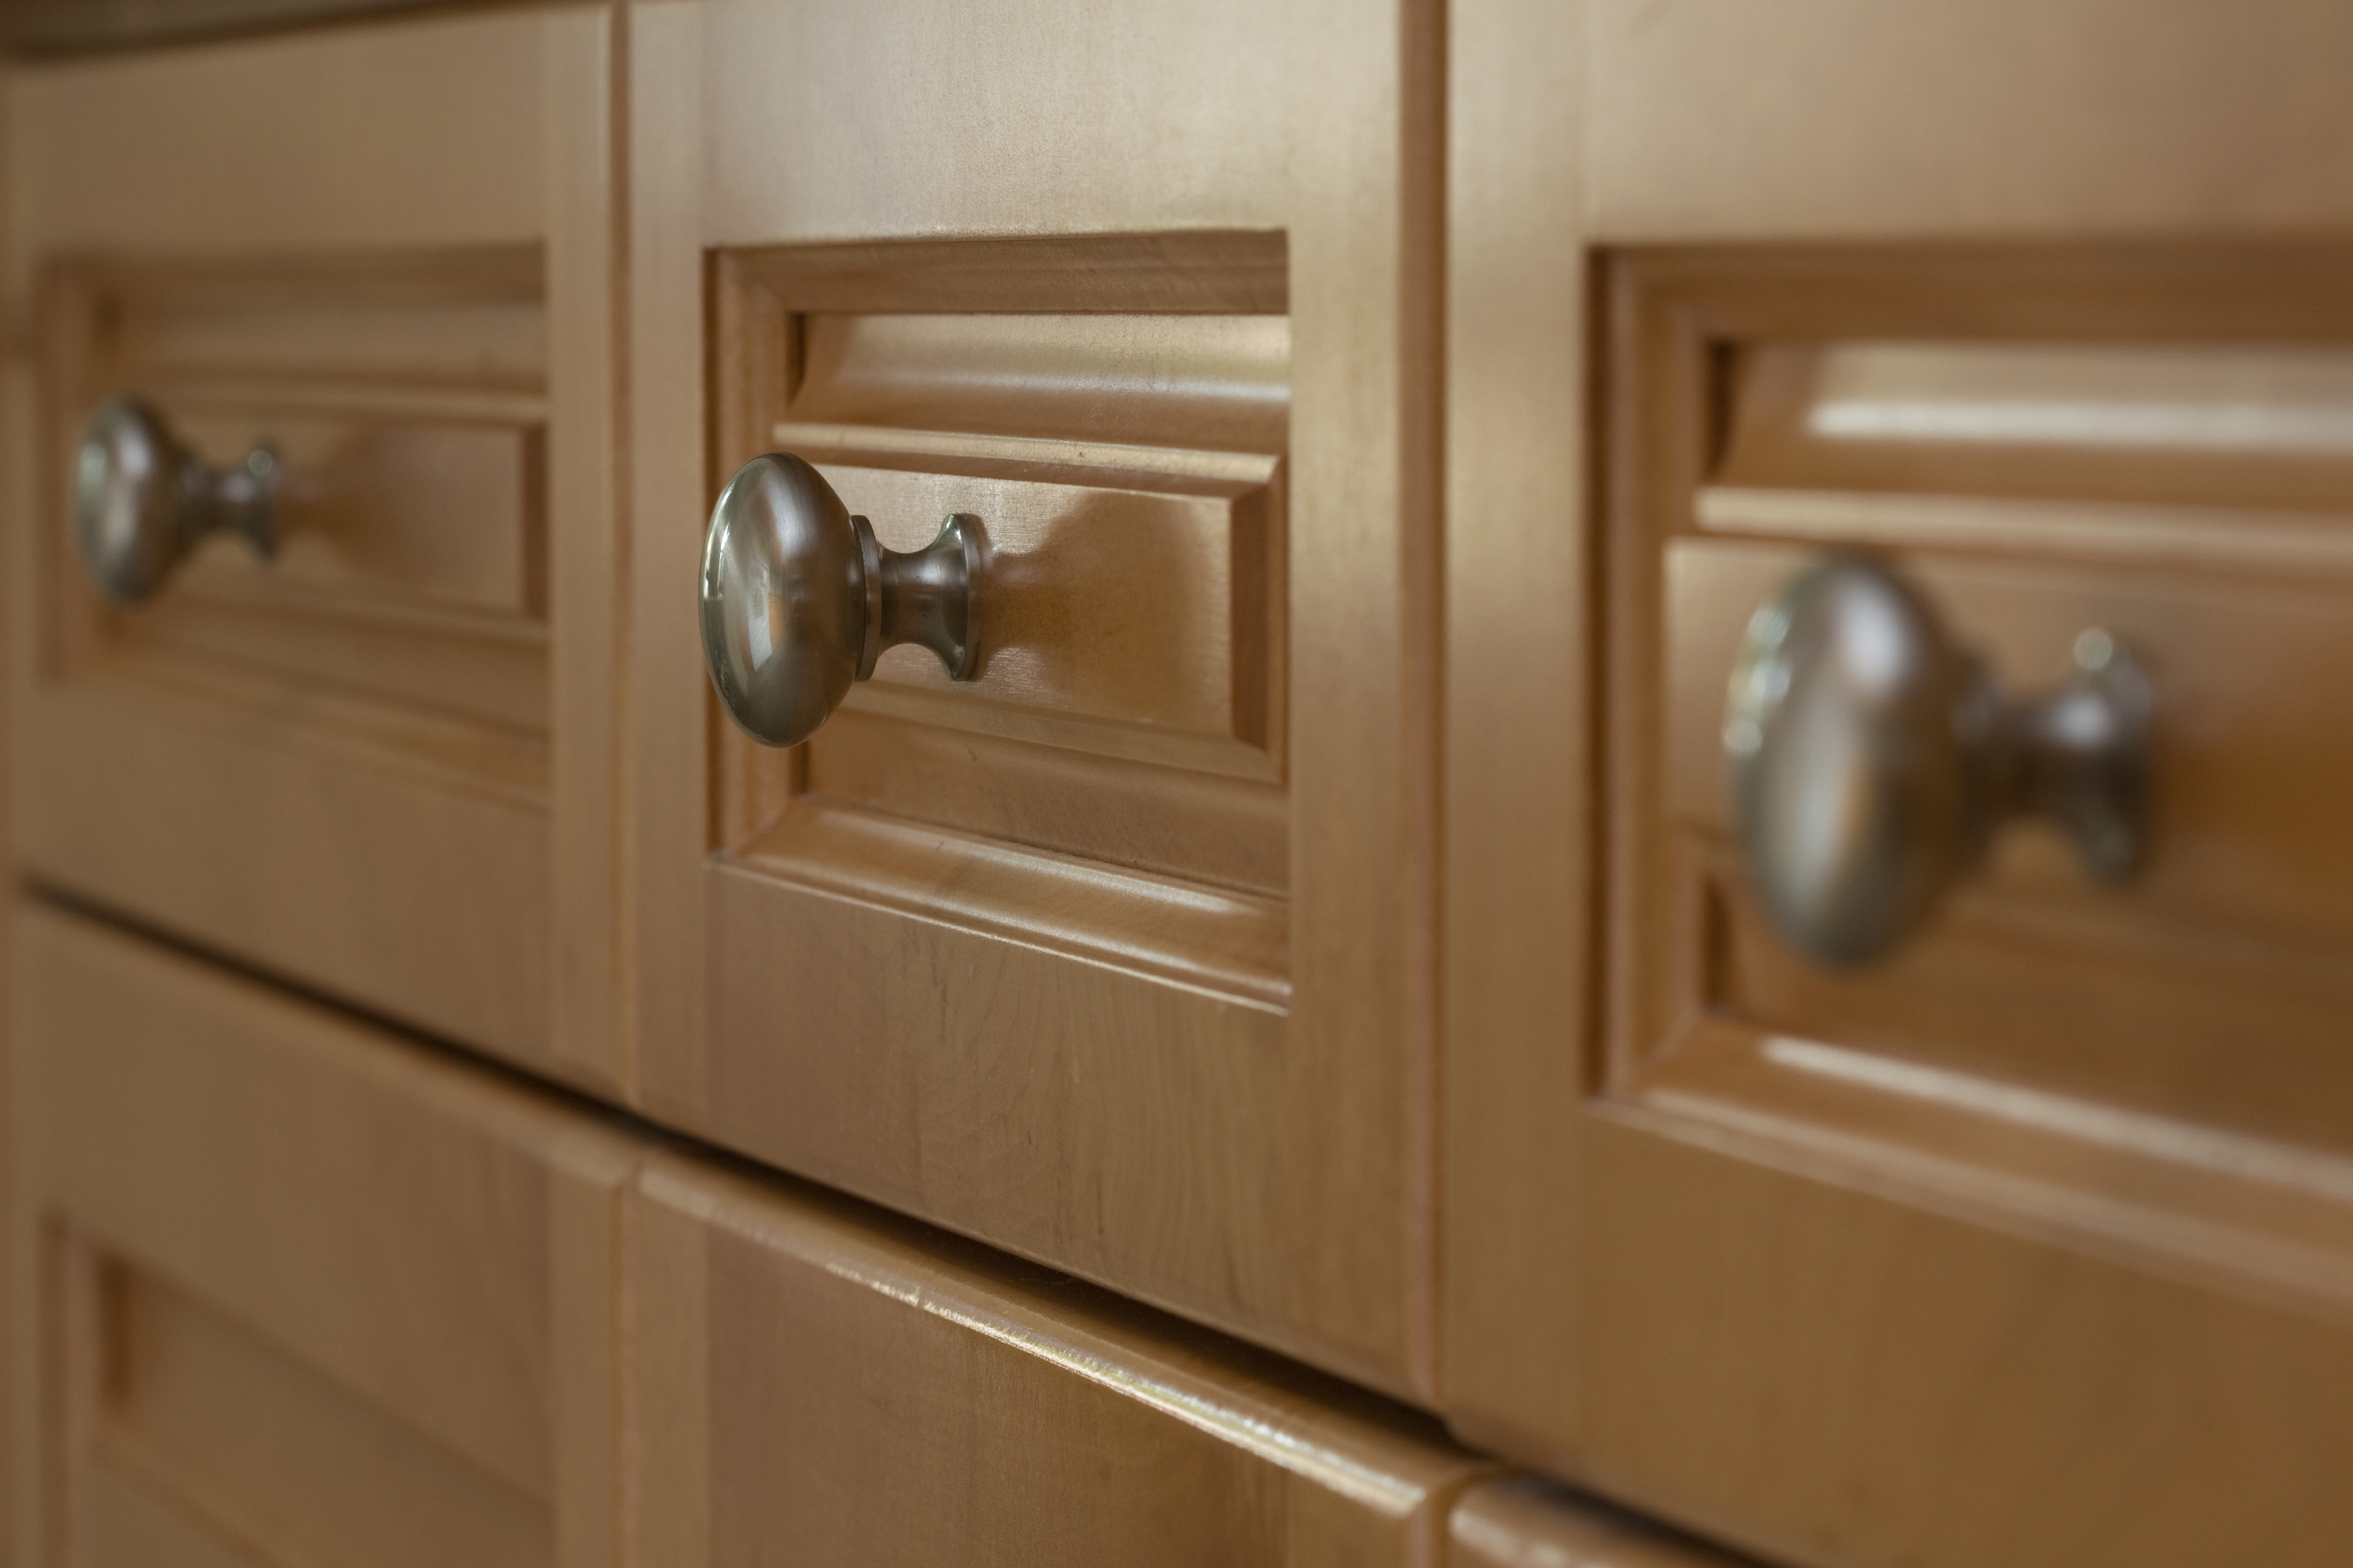 knobs or pulls on kitchen cabinets a reader asks what is the correct size for cabinet handles 9643